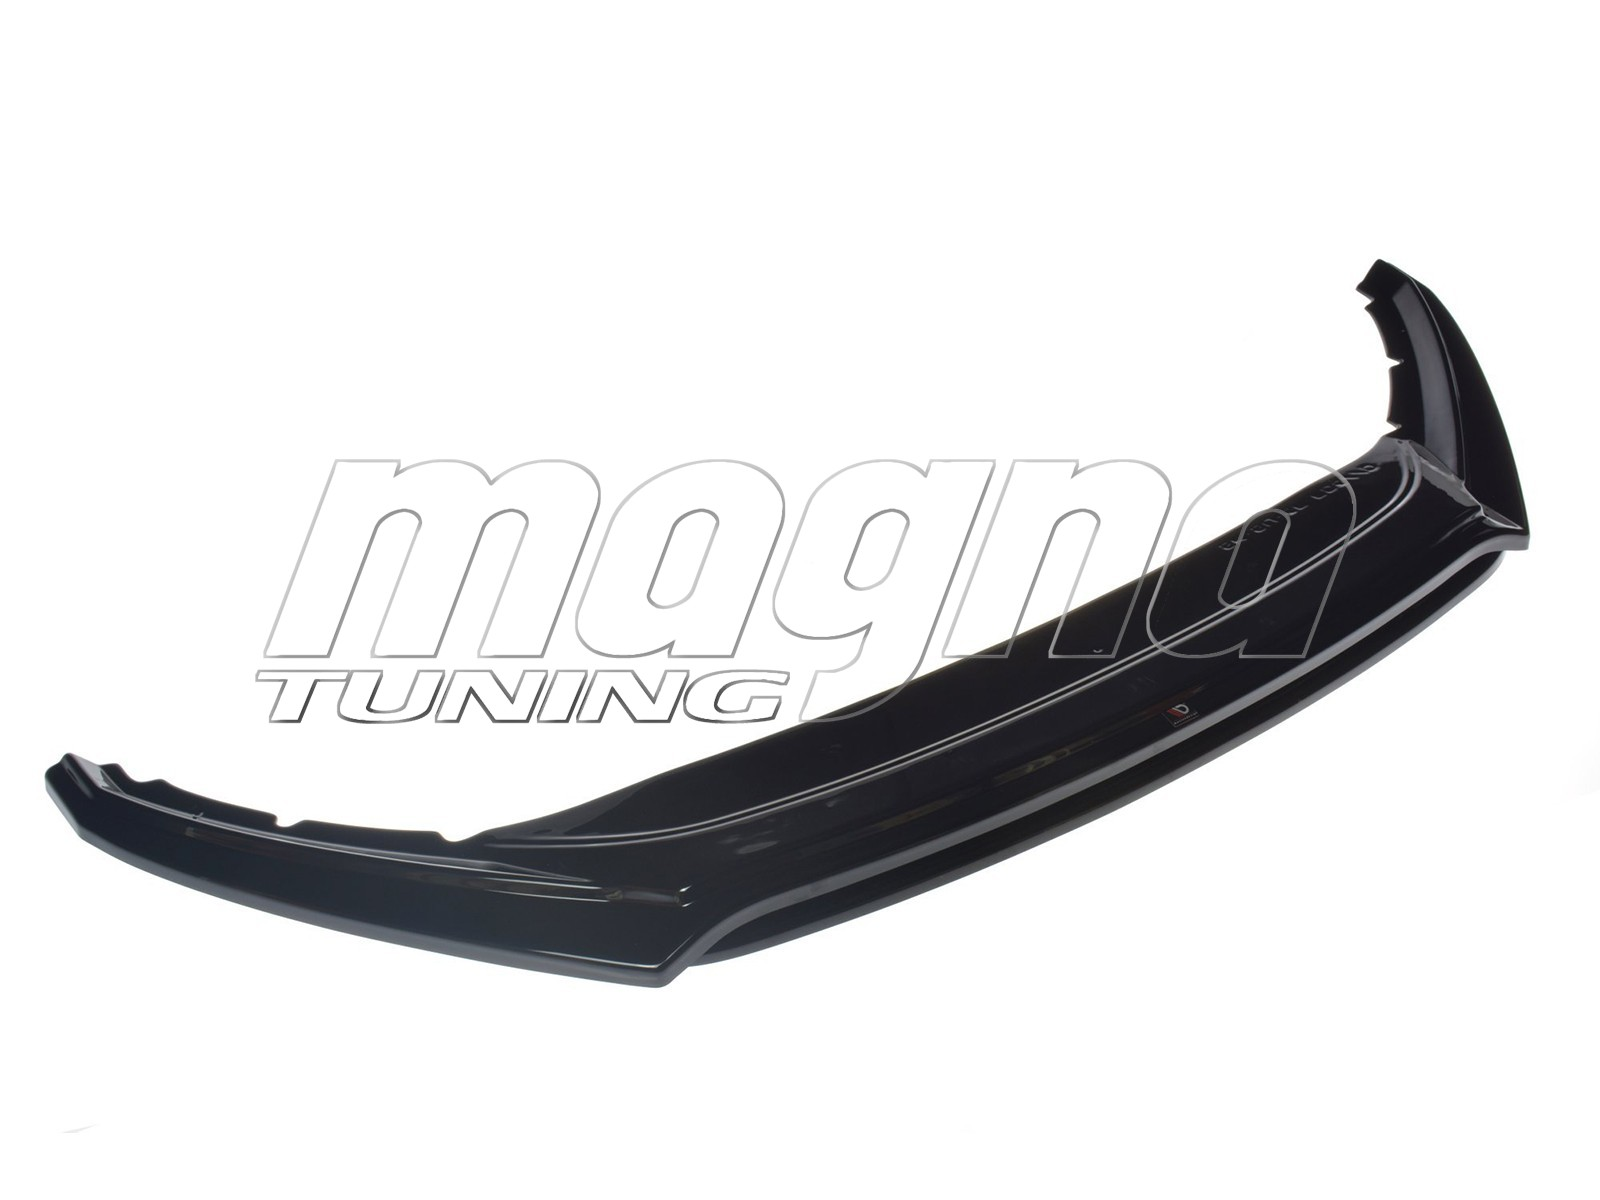 Skoda Superb B8 3V Matrix3 Front Bumper Extension